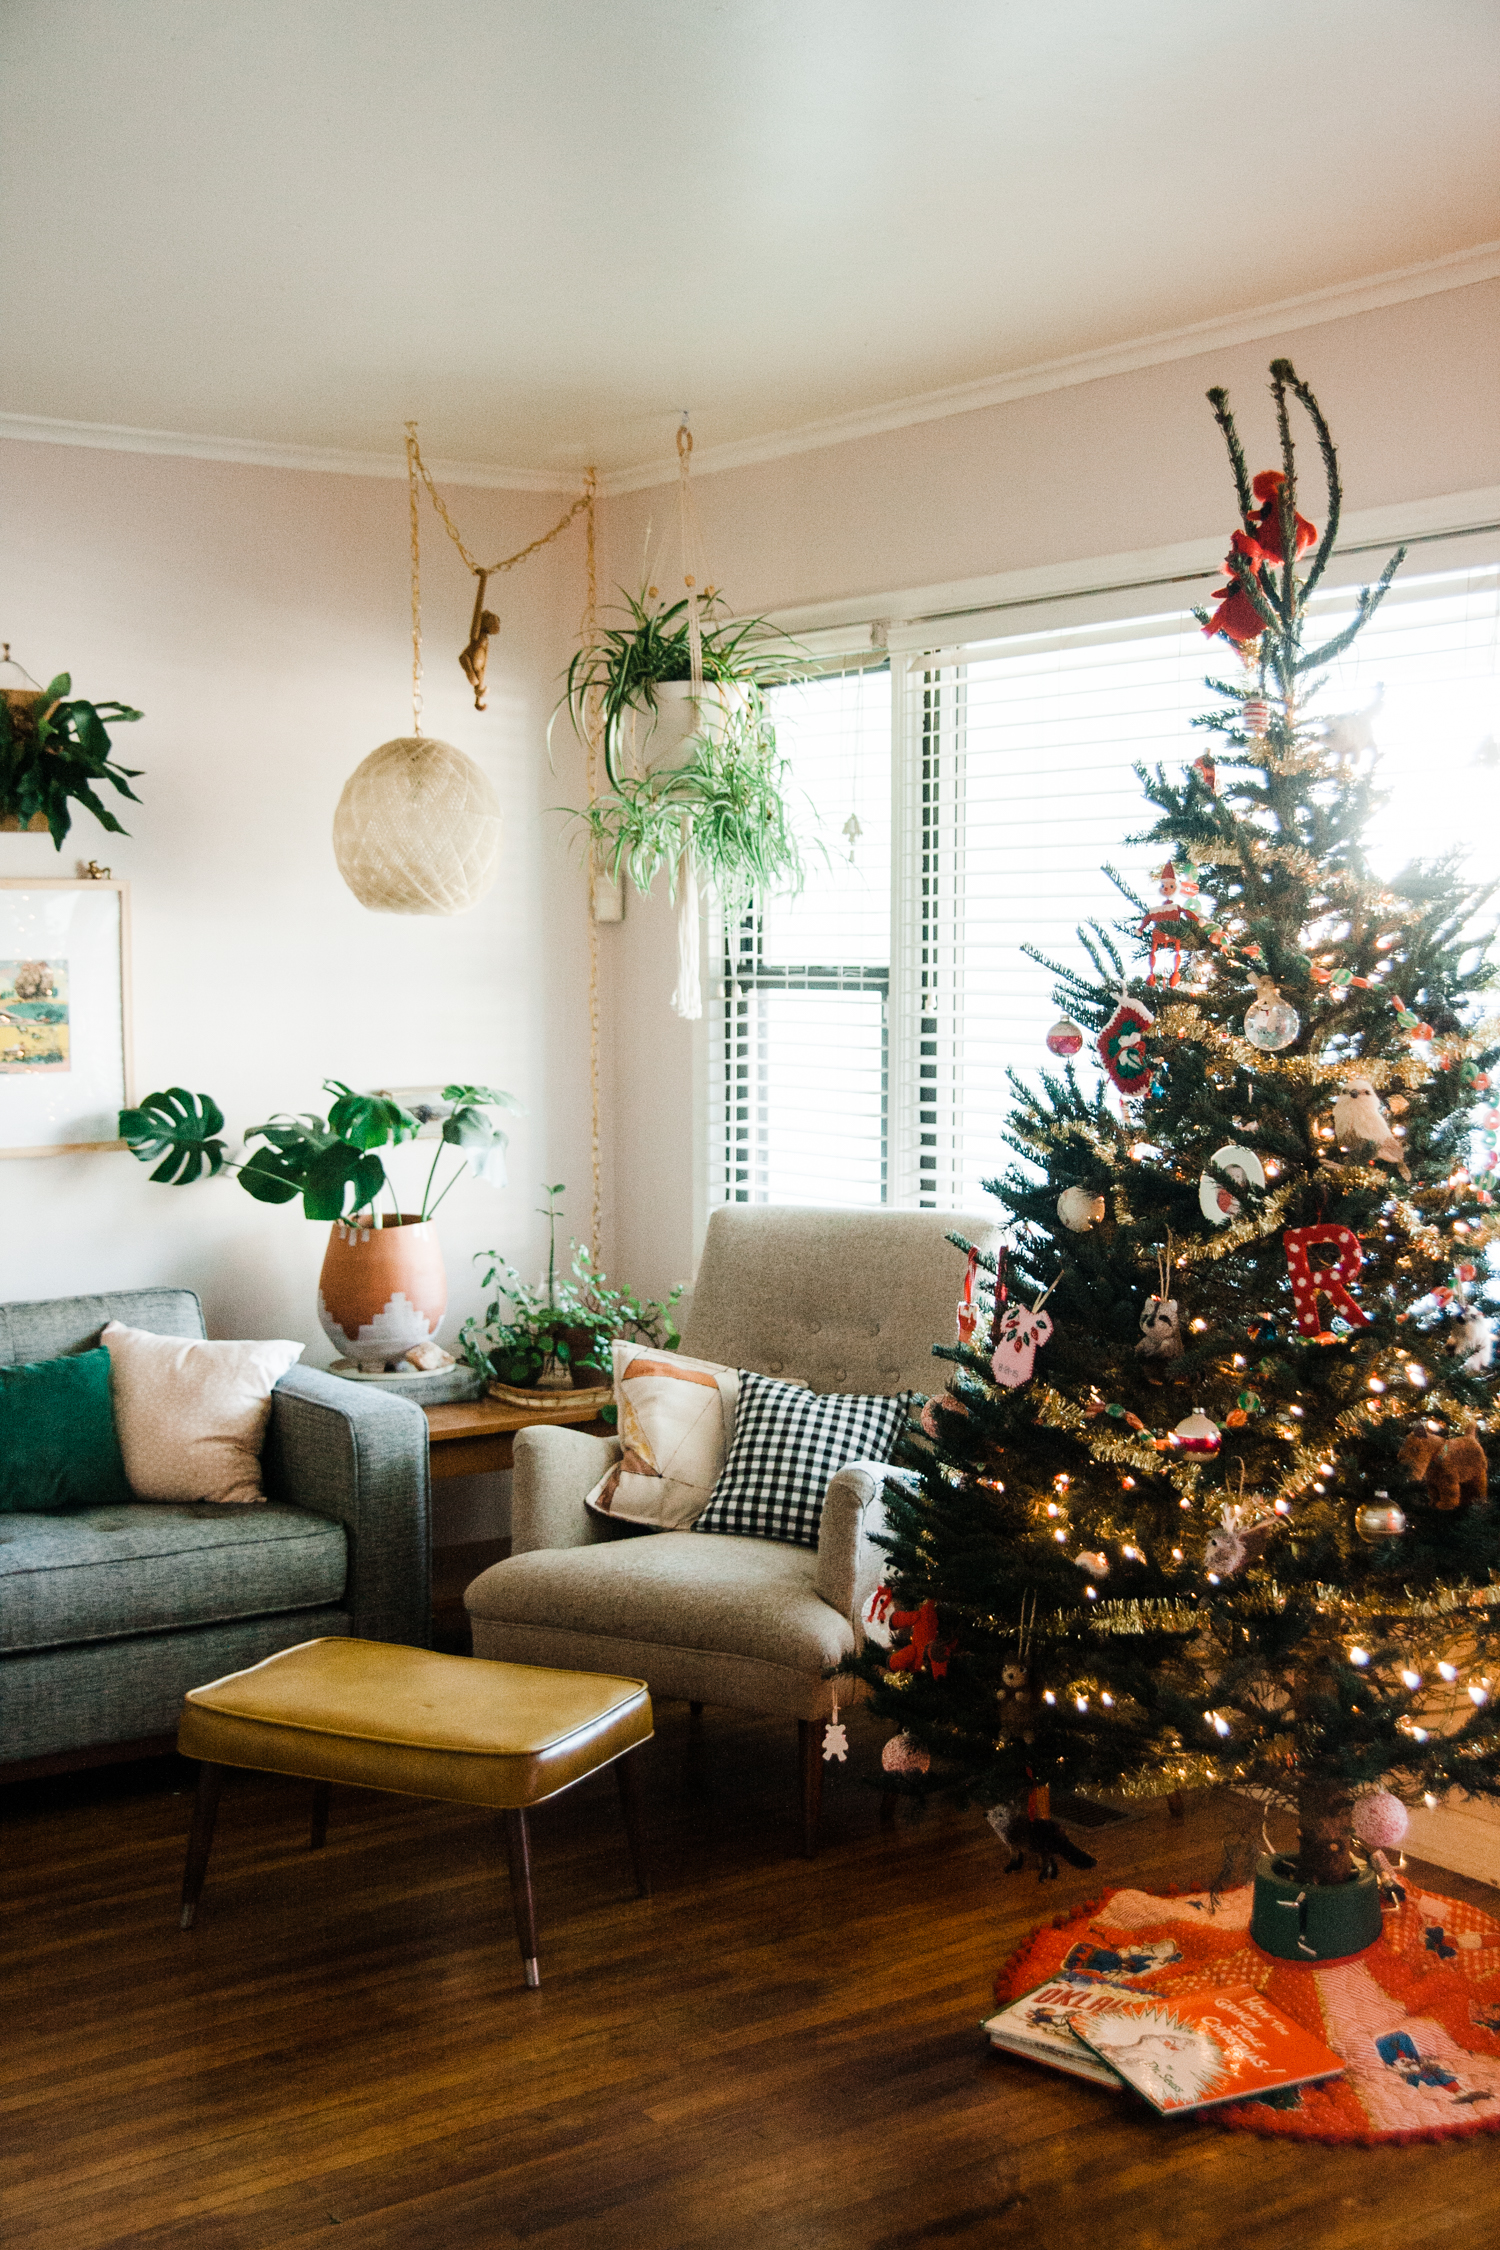 daly holiday home tour-38.jpg